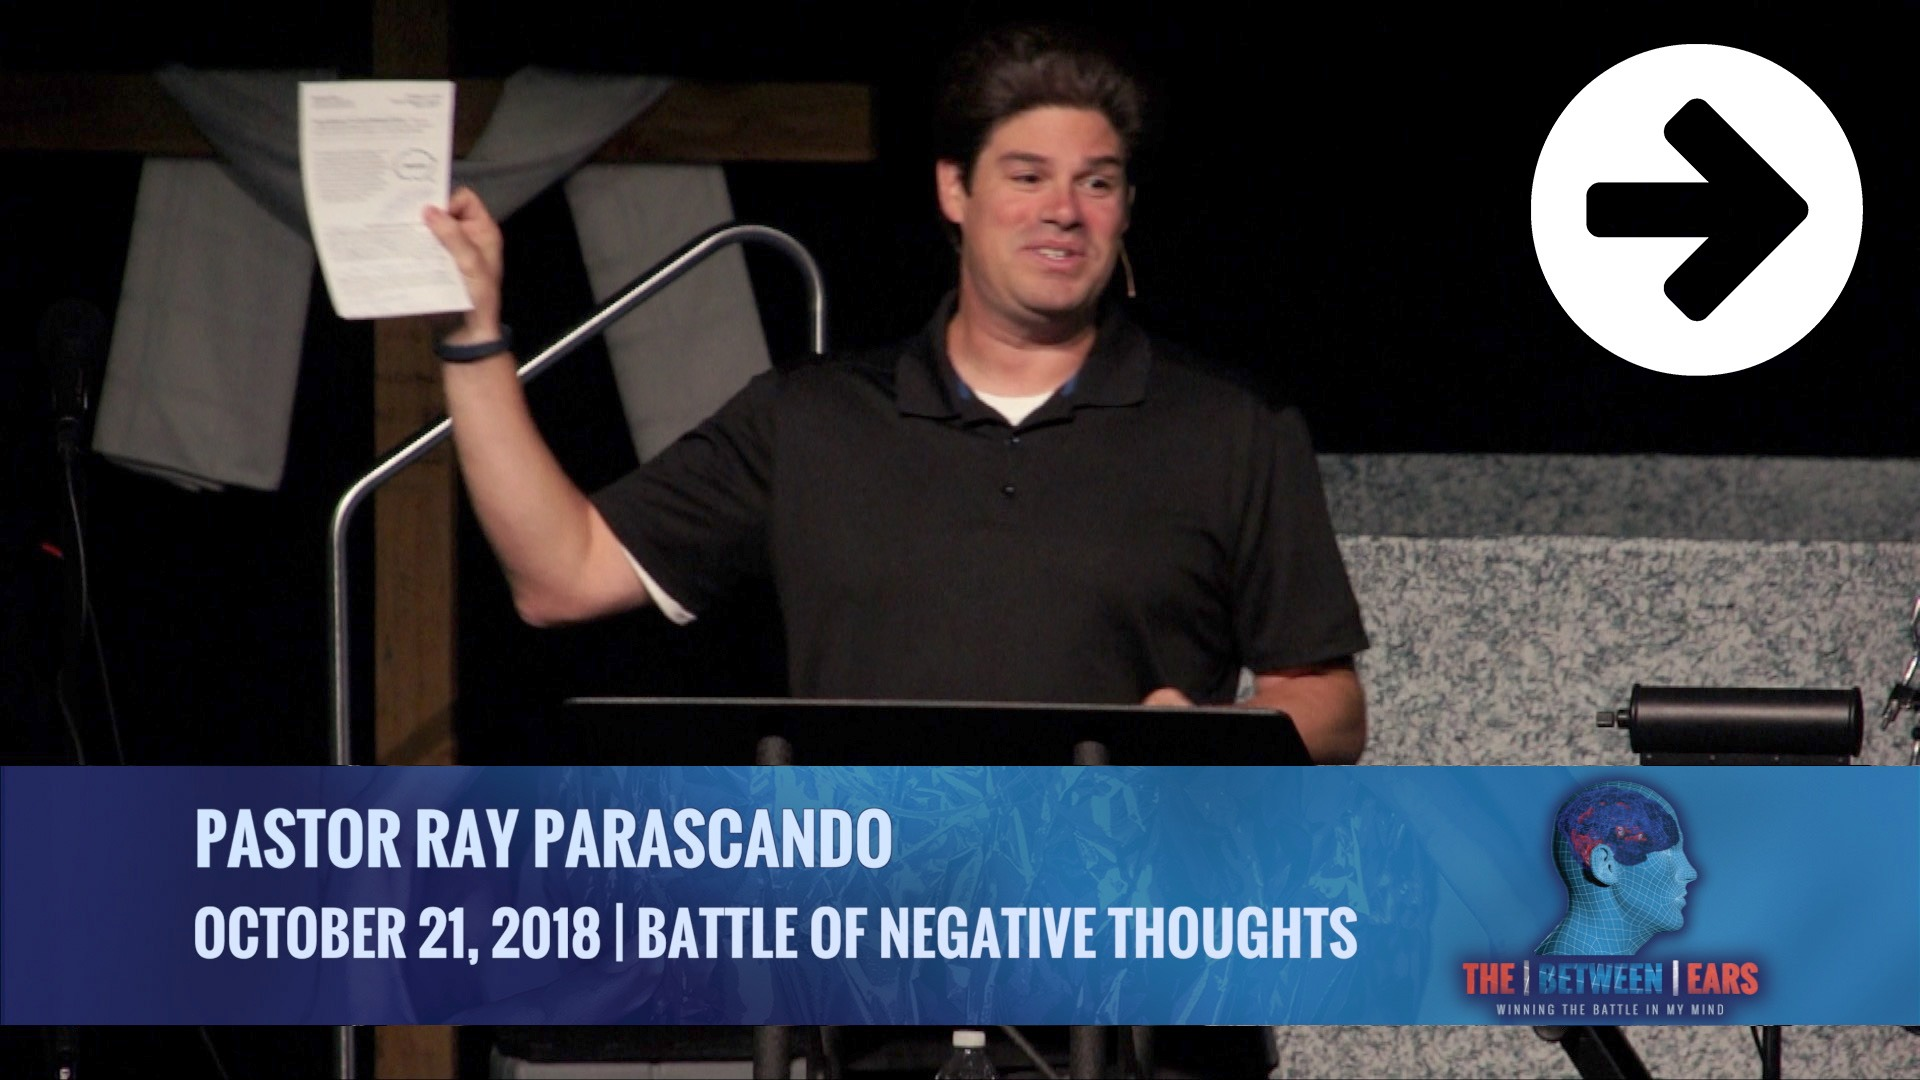 Battle Of Negative Thoughts